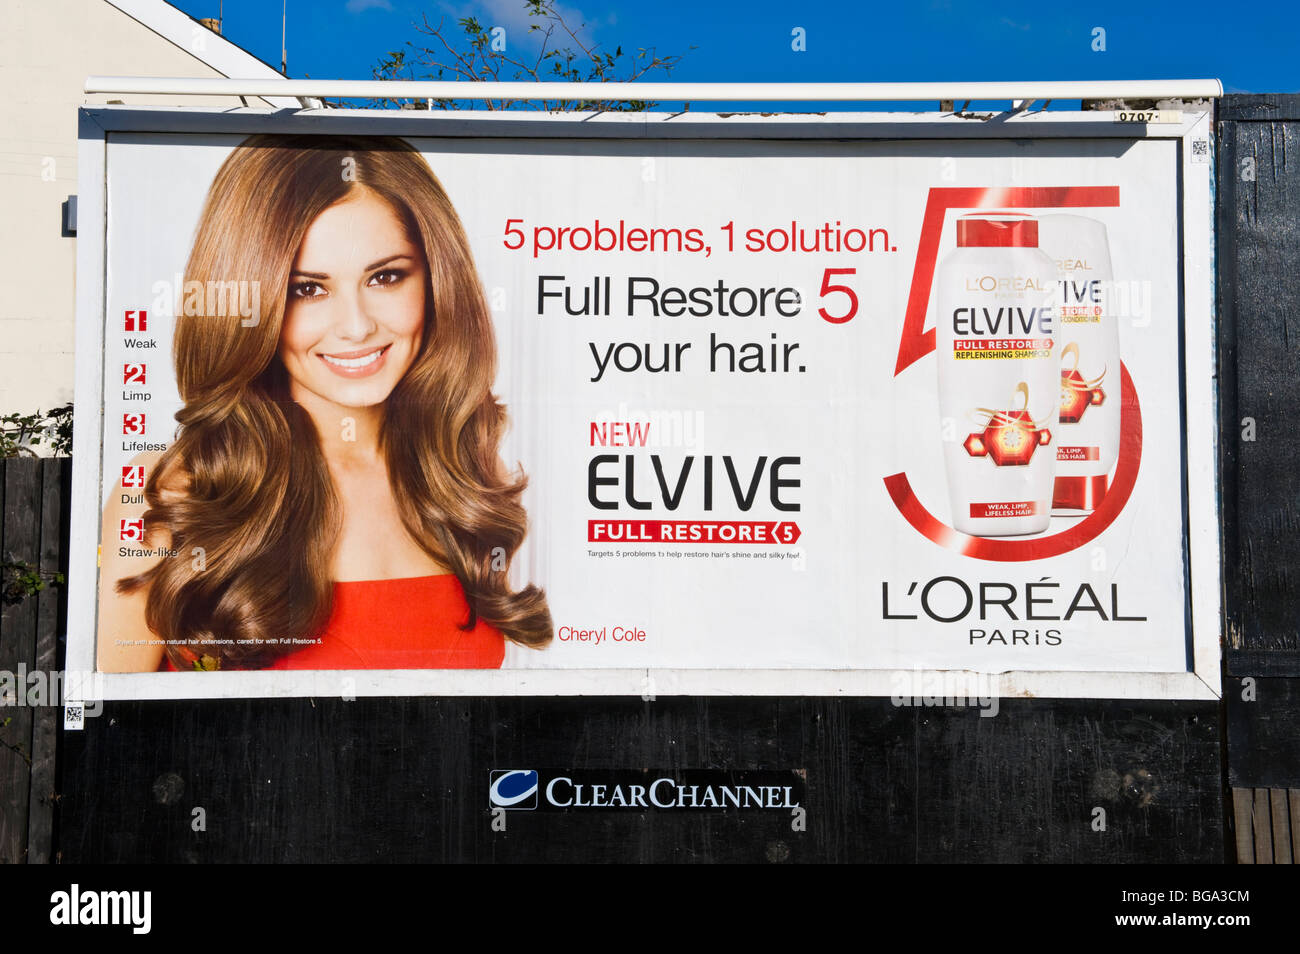 ClearChannel billboard site featuring Cheryl Cole on L'Oreal poster in Newport South Wales UK - Stock Image